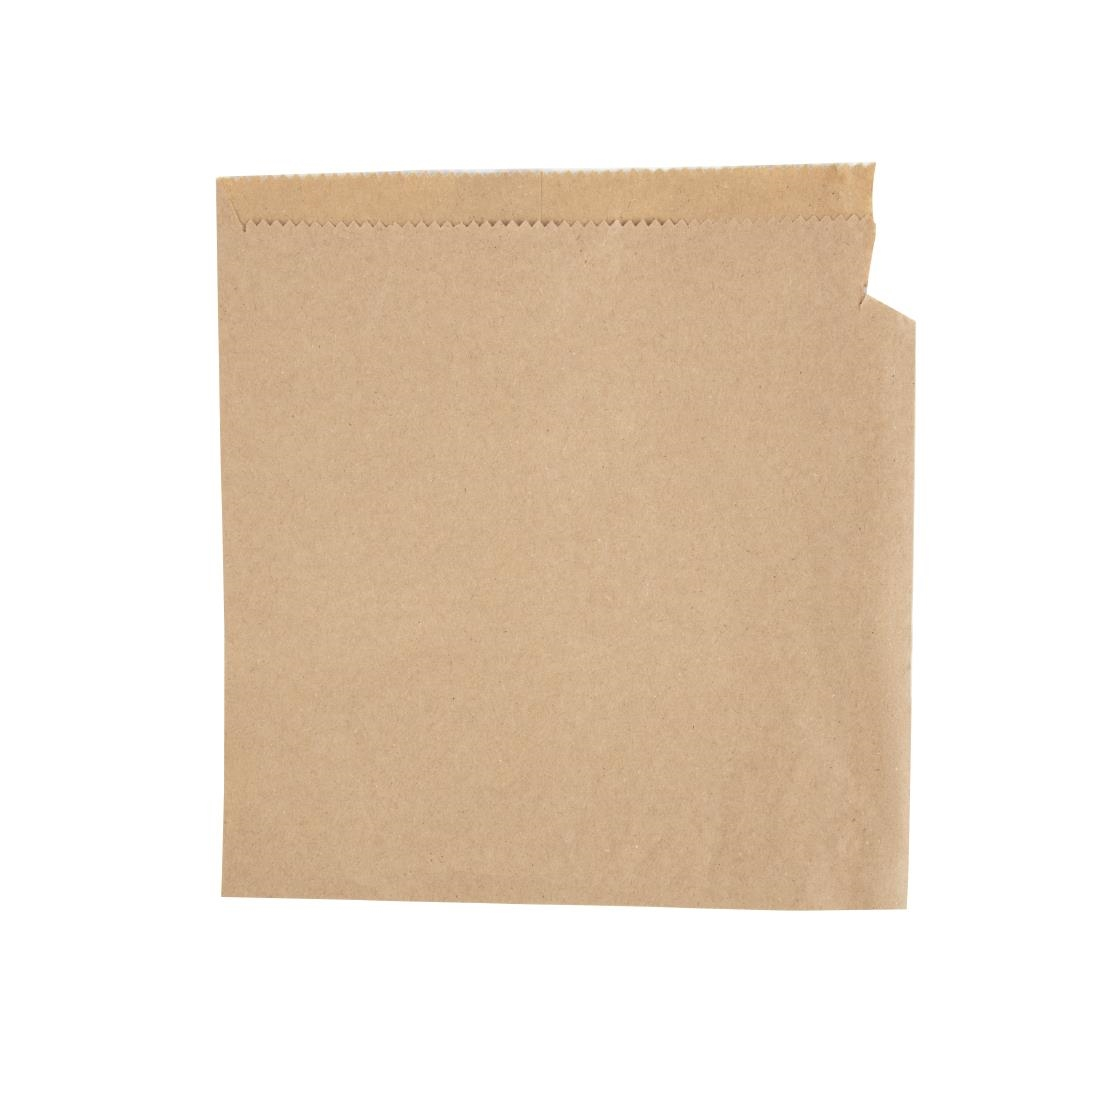 Image of Fiesta Brown Paper Counter Bags Small (Pack of 1000) Pack of 1000